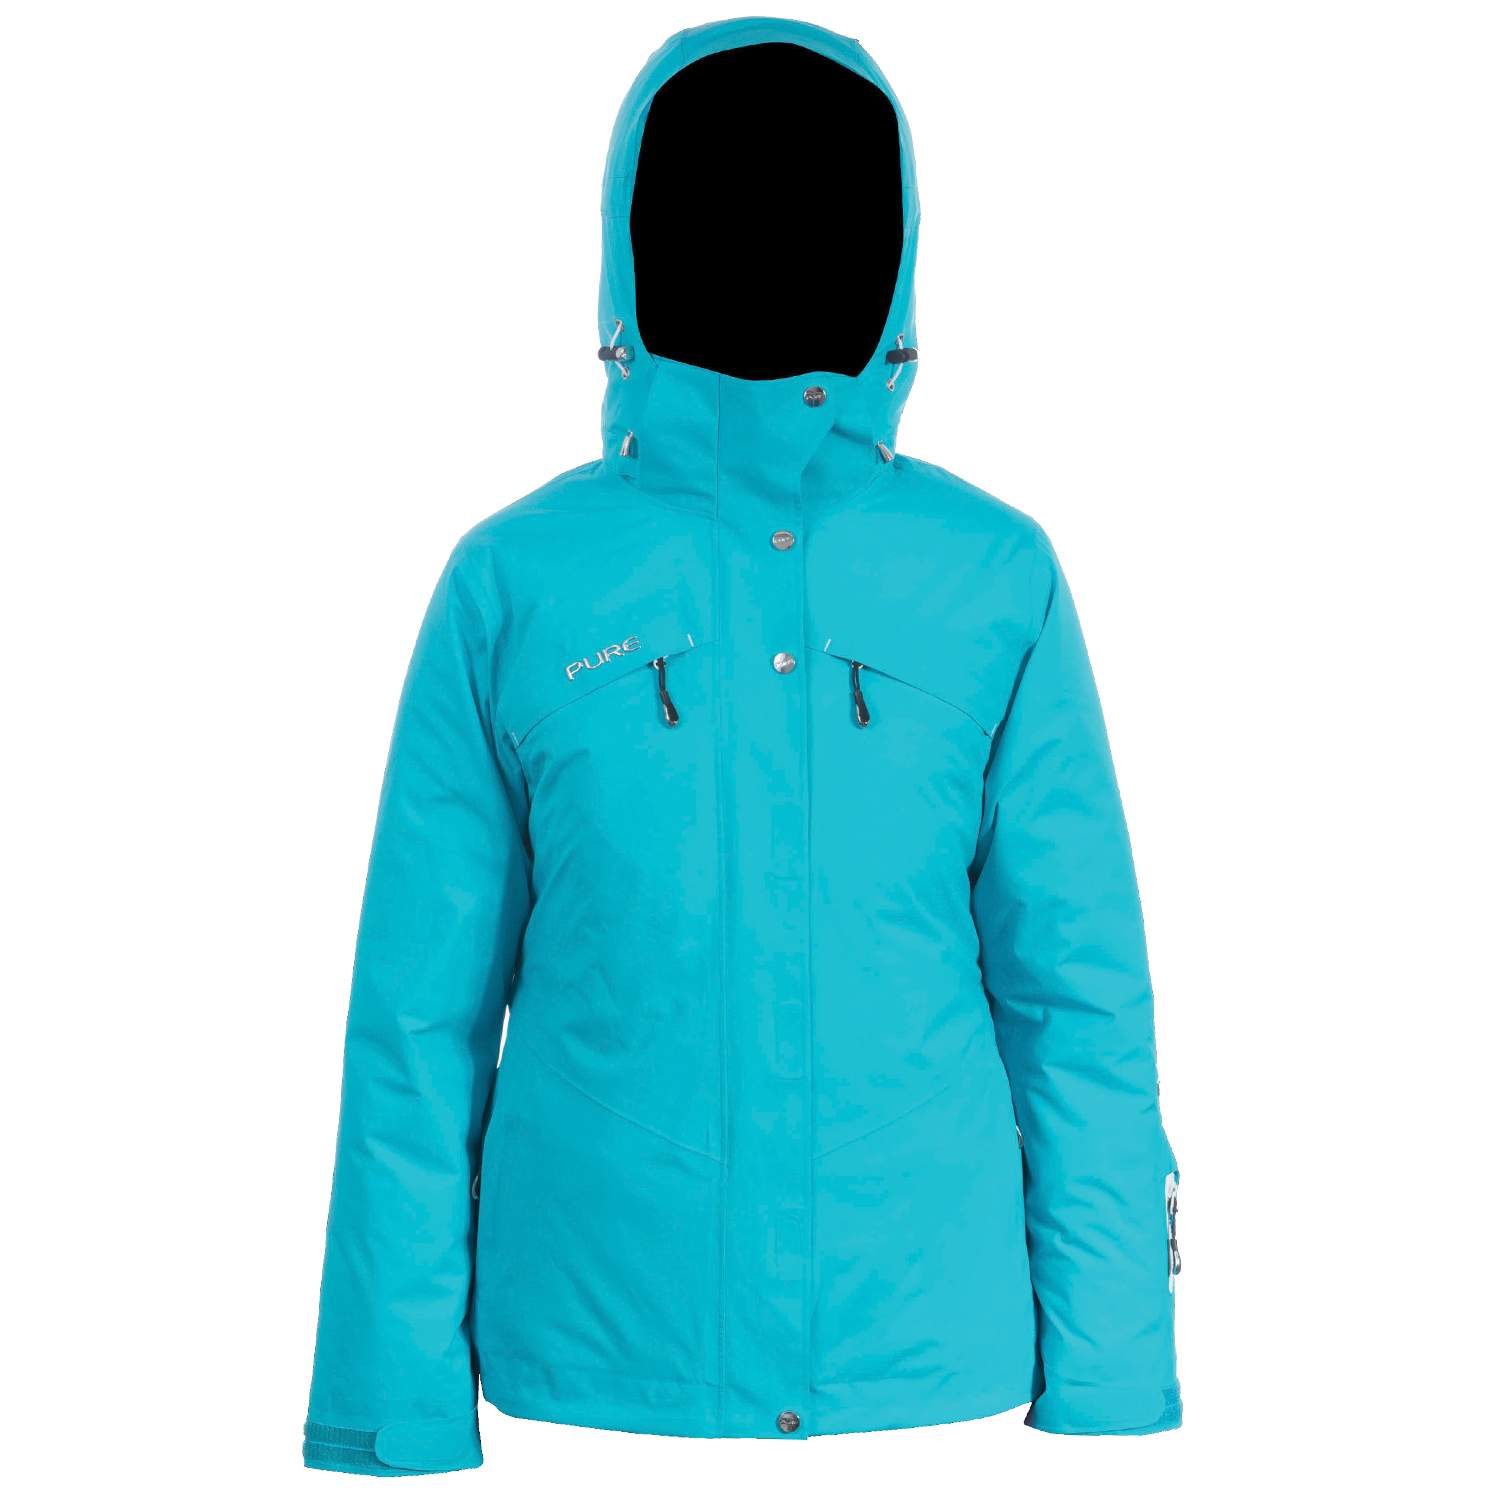 Meribel Jacket - Tropic